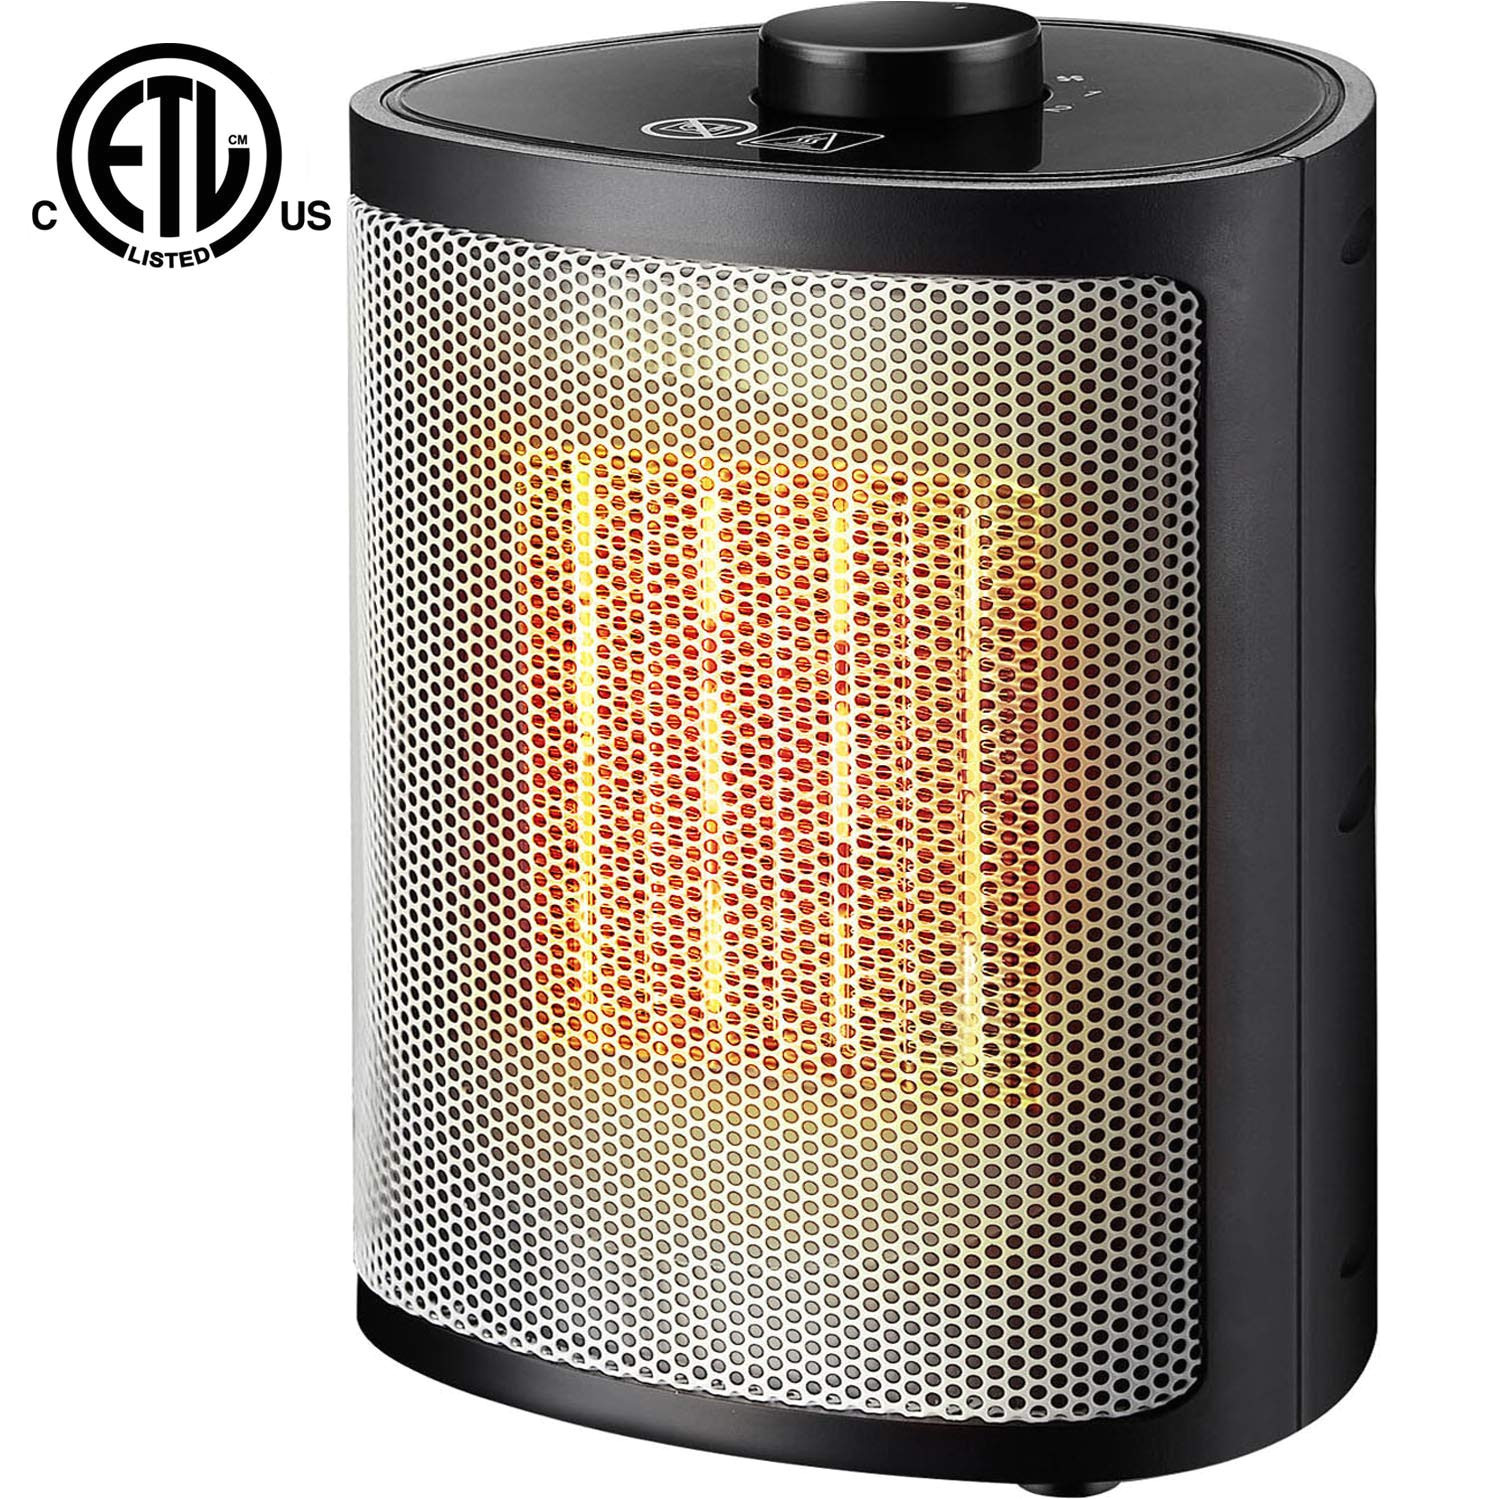 orony ceramic portable space heater with adjustable thermostat perfect for the home and office